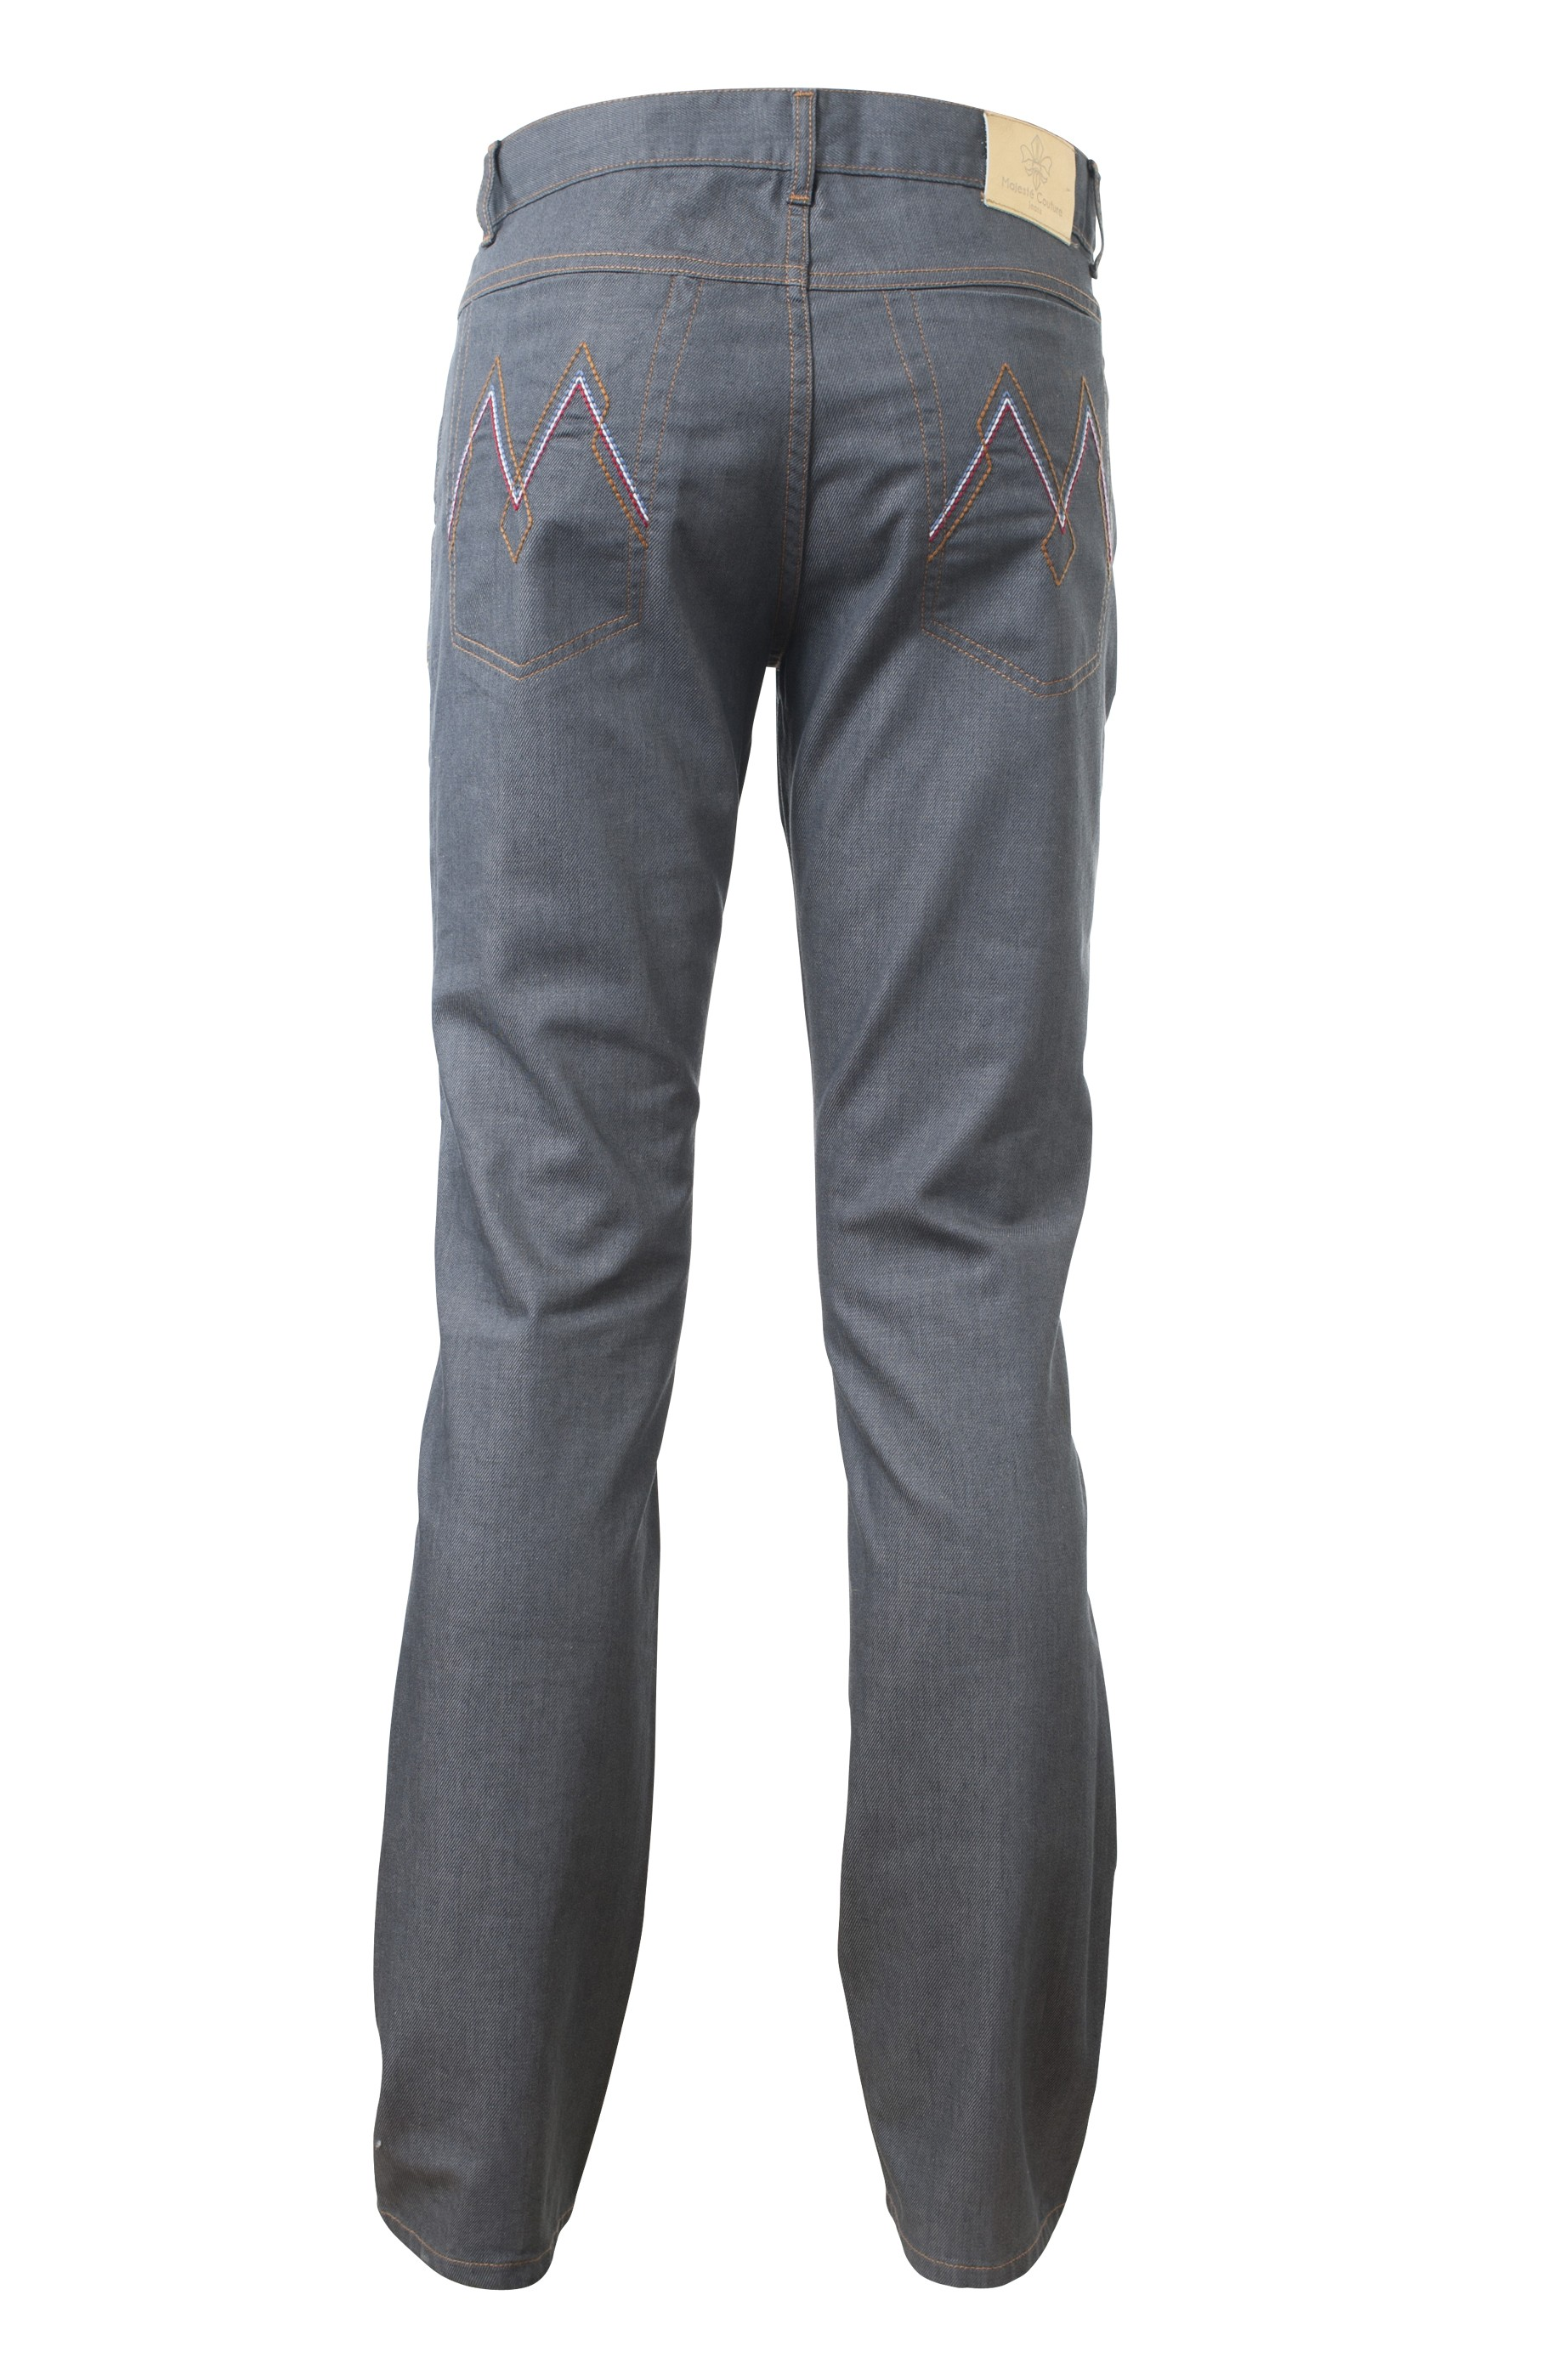 Majesté Couture Paris: MJ-536 PLATINUM JEANS | Clothing,Clothing > Jeans -  Hiphunters Shop